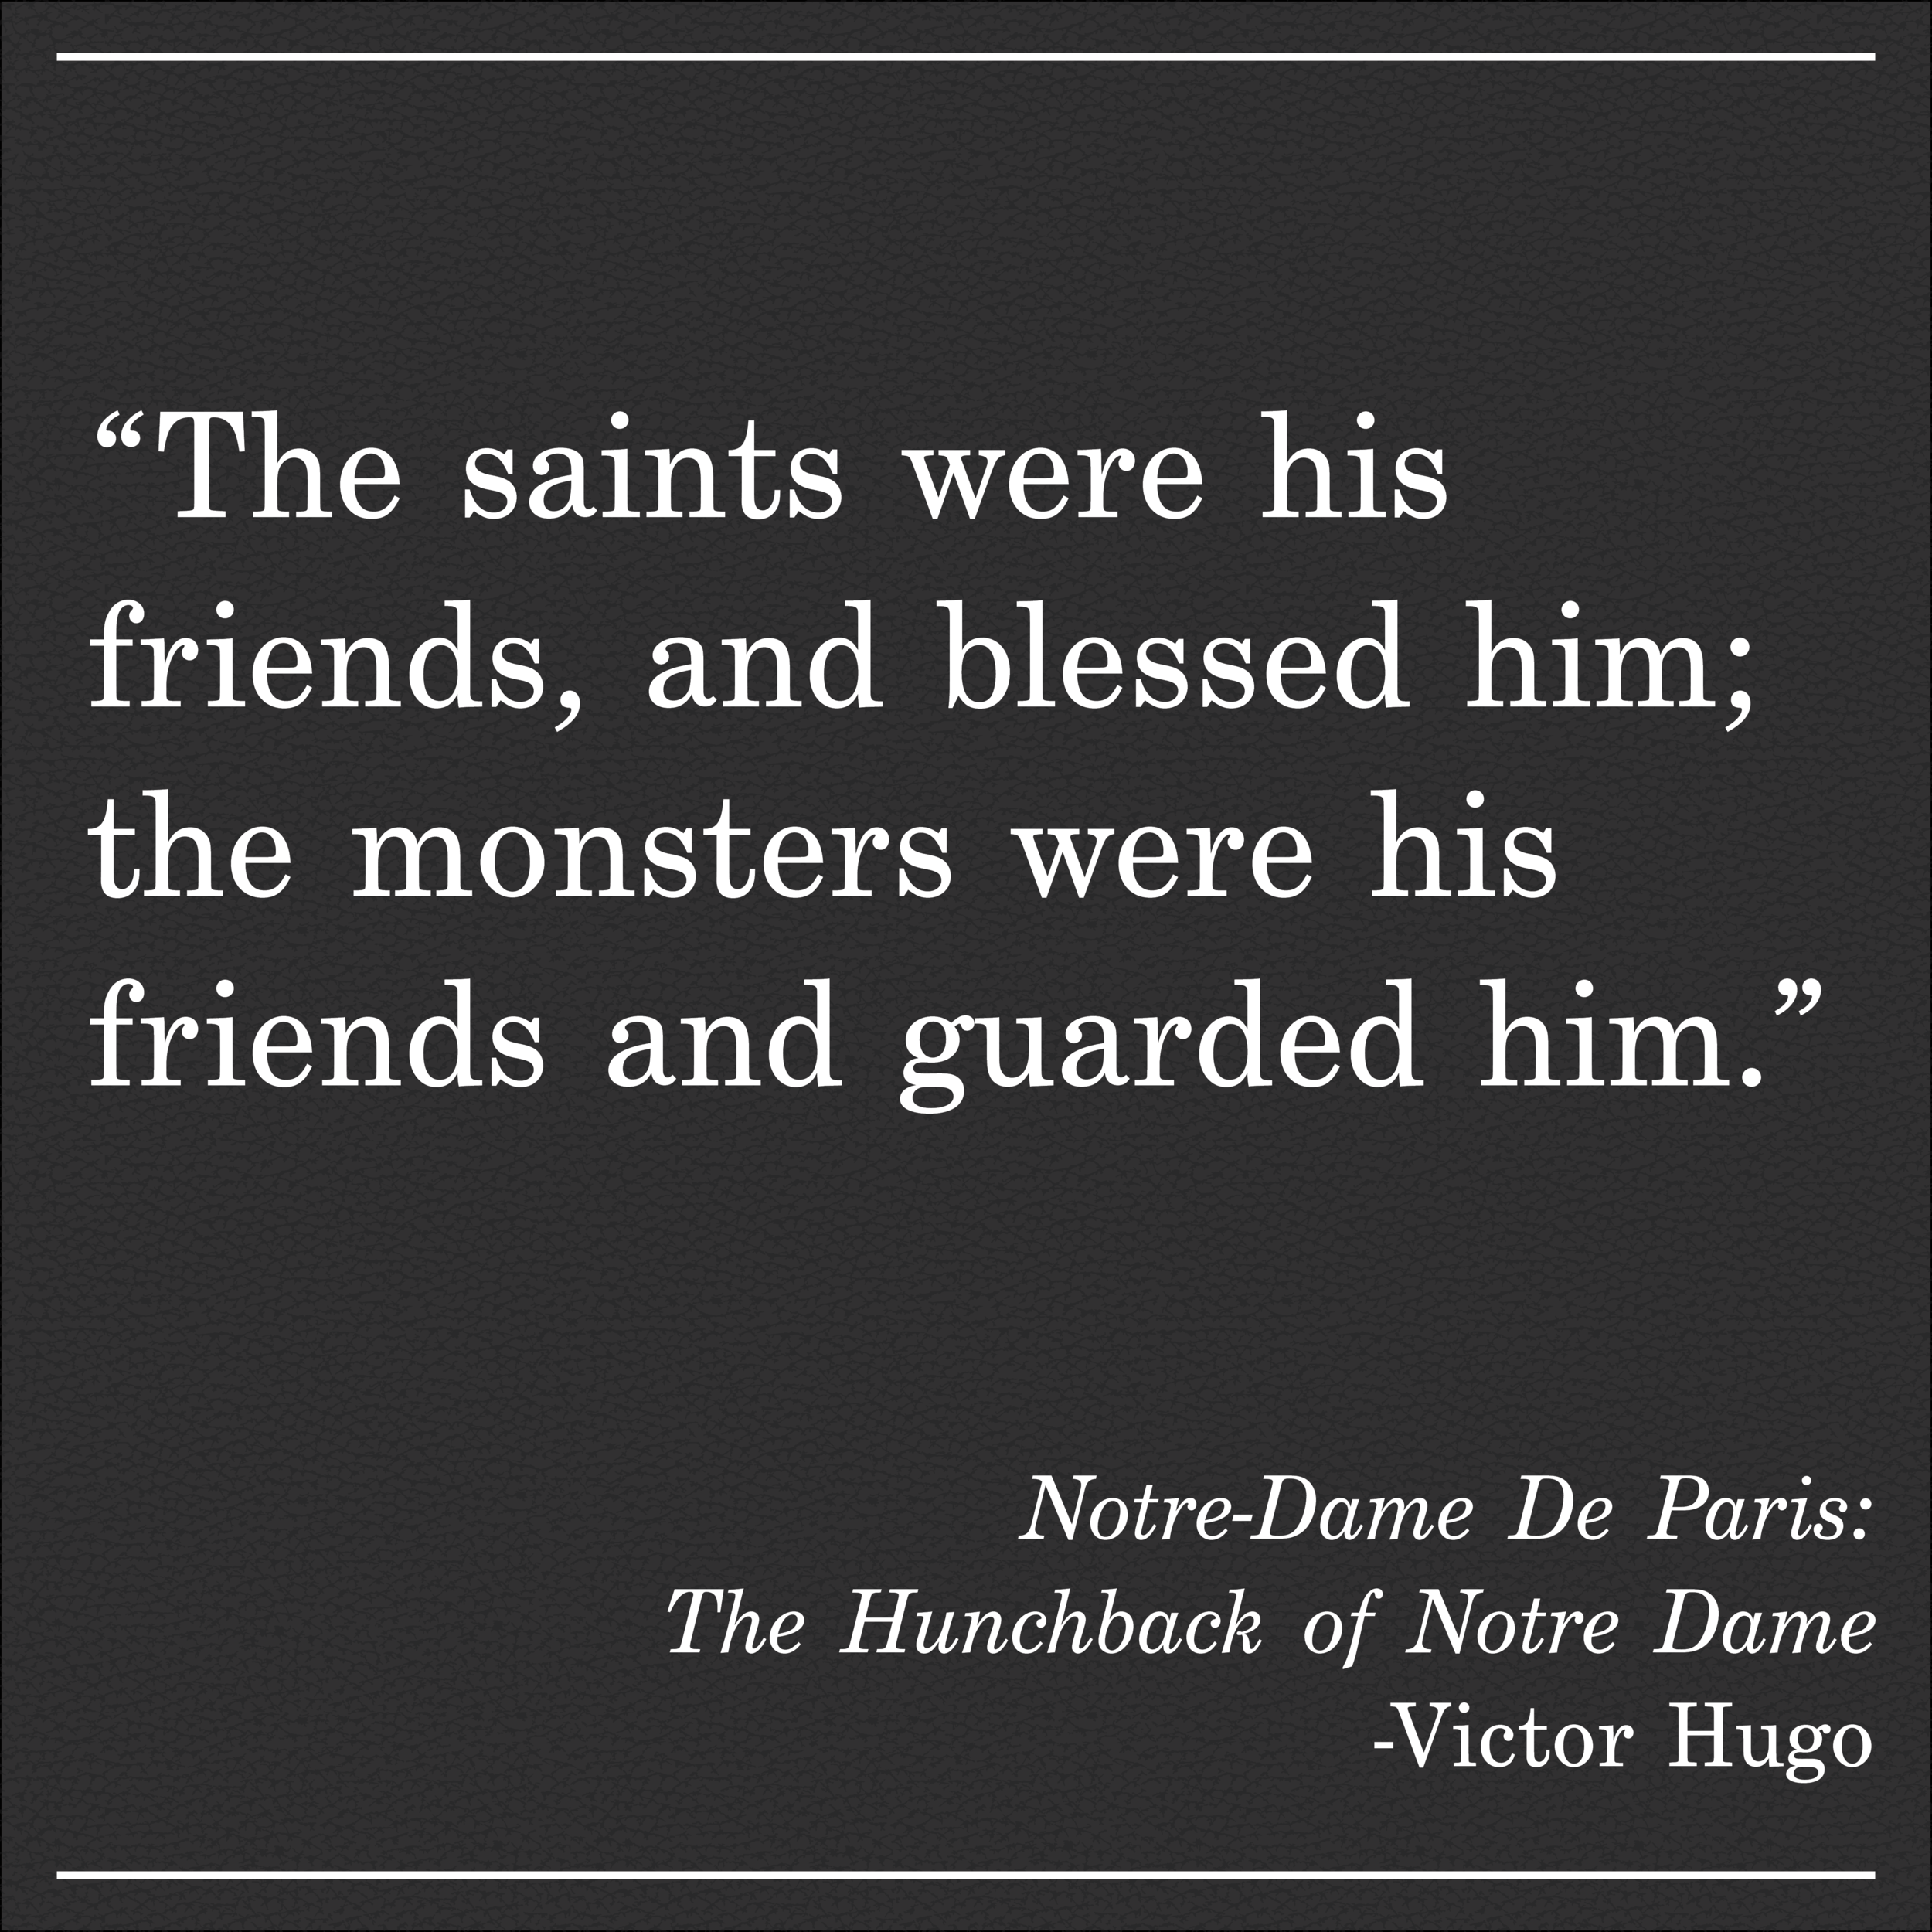 Daily Quote The Hunchback of Notre Dame by Victor Hugo